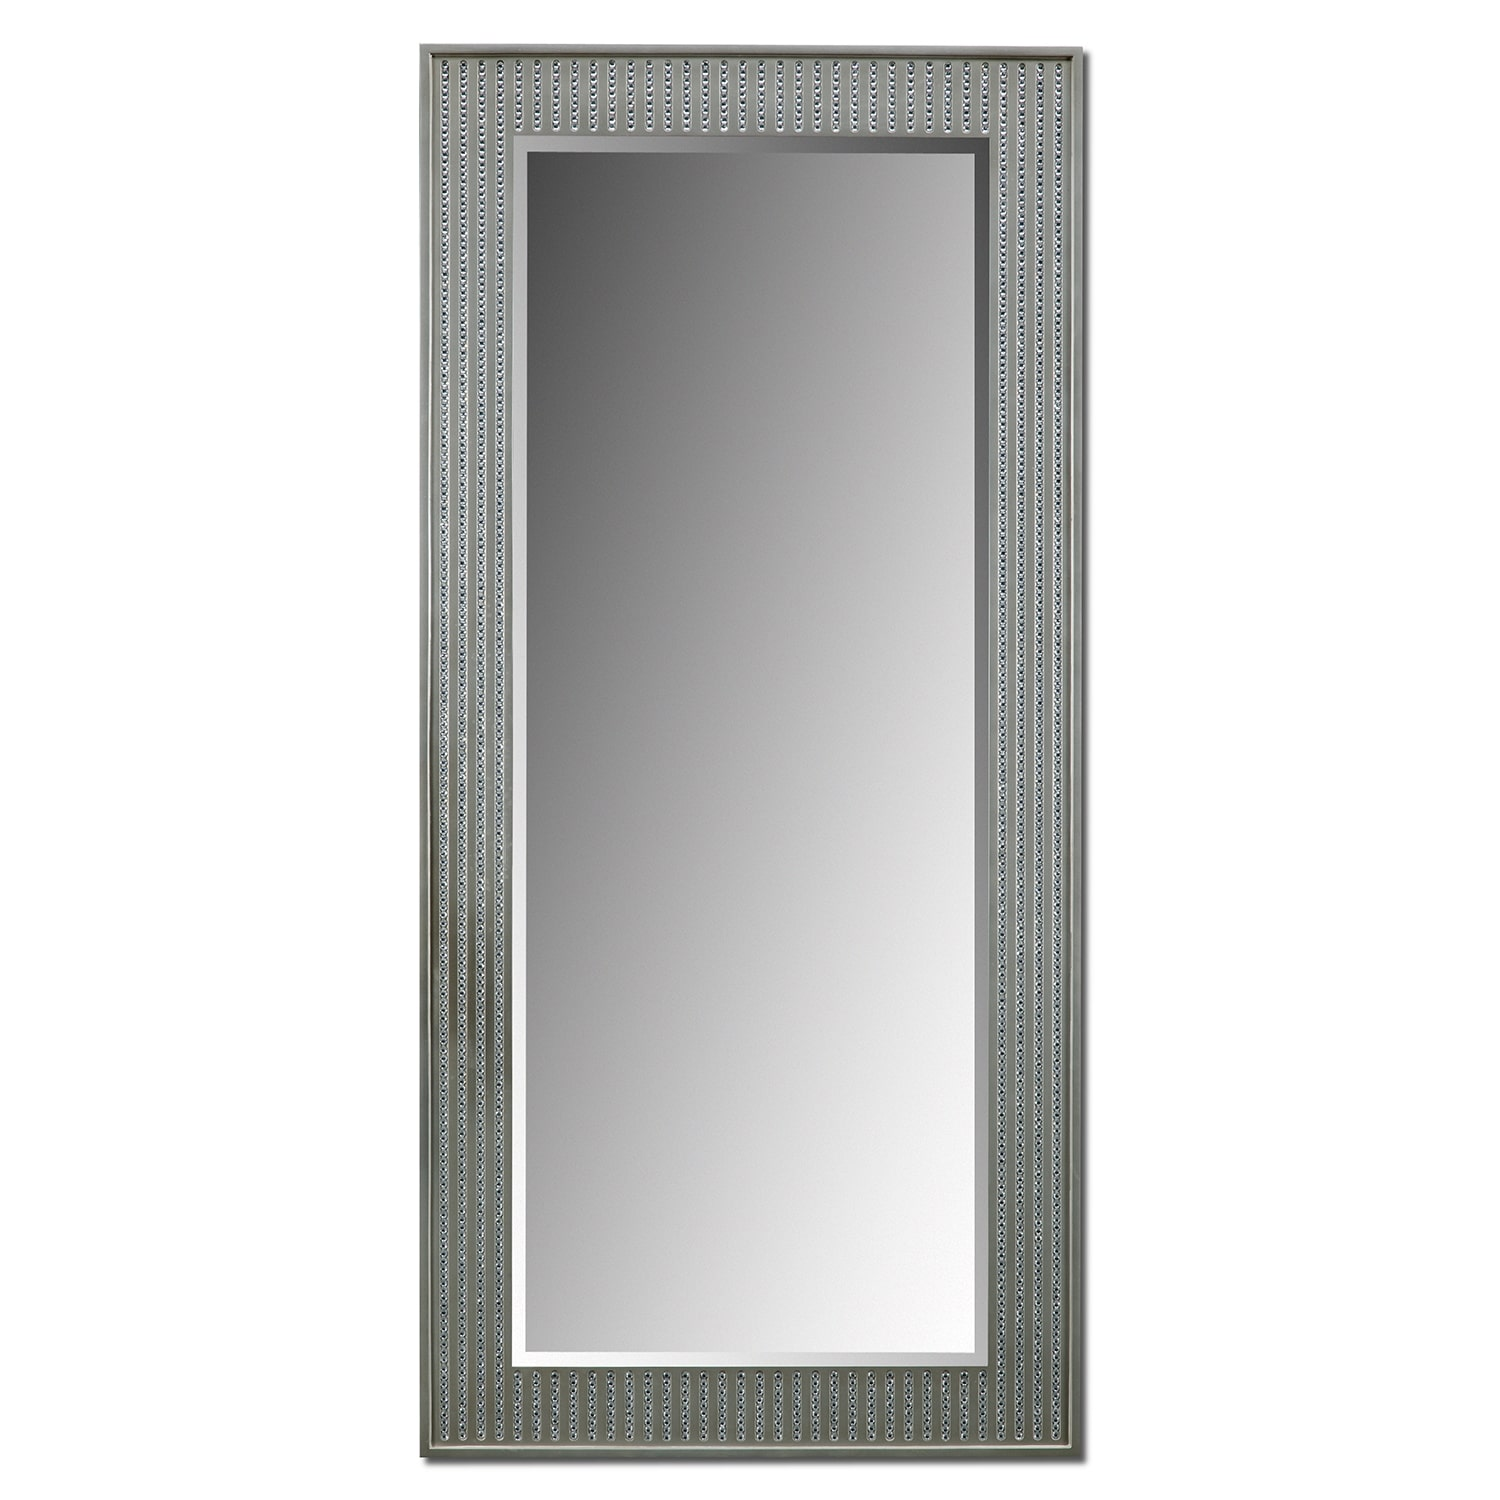 Bling Glam II Mirror